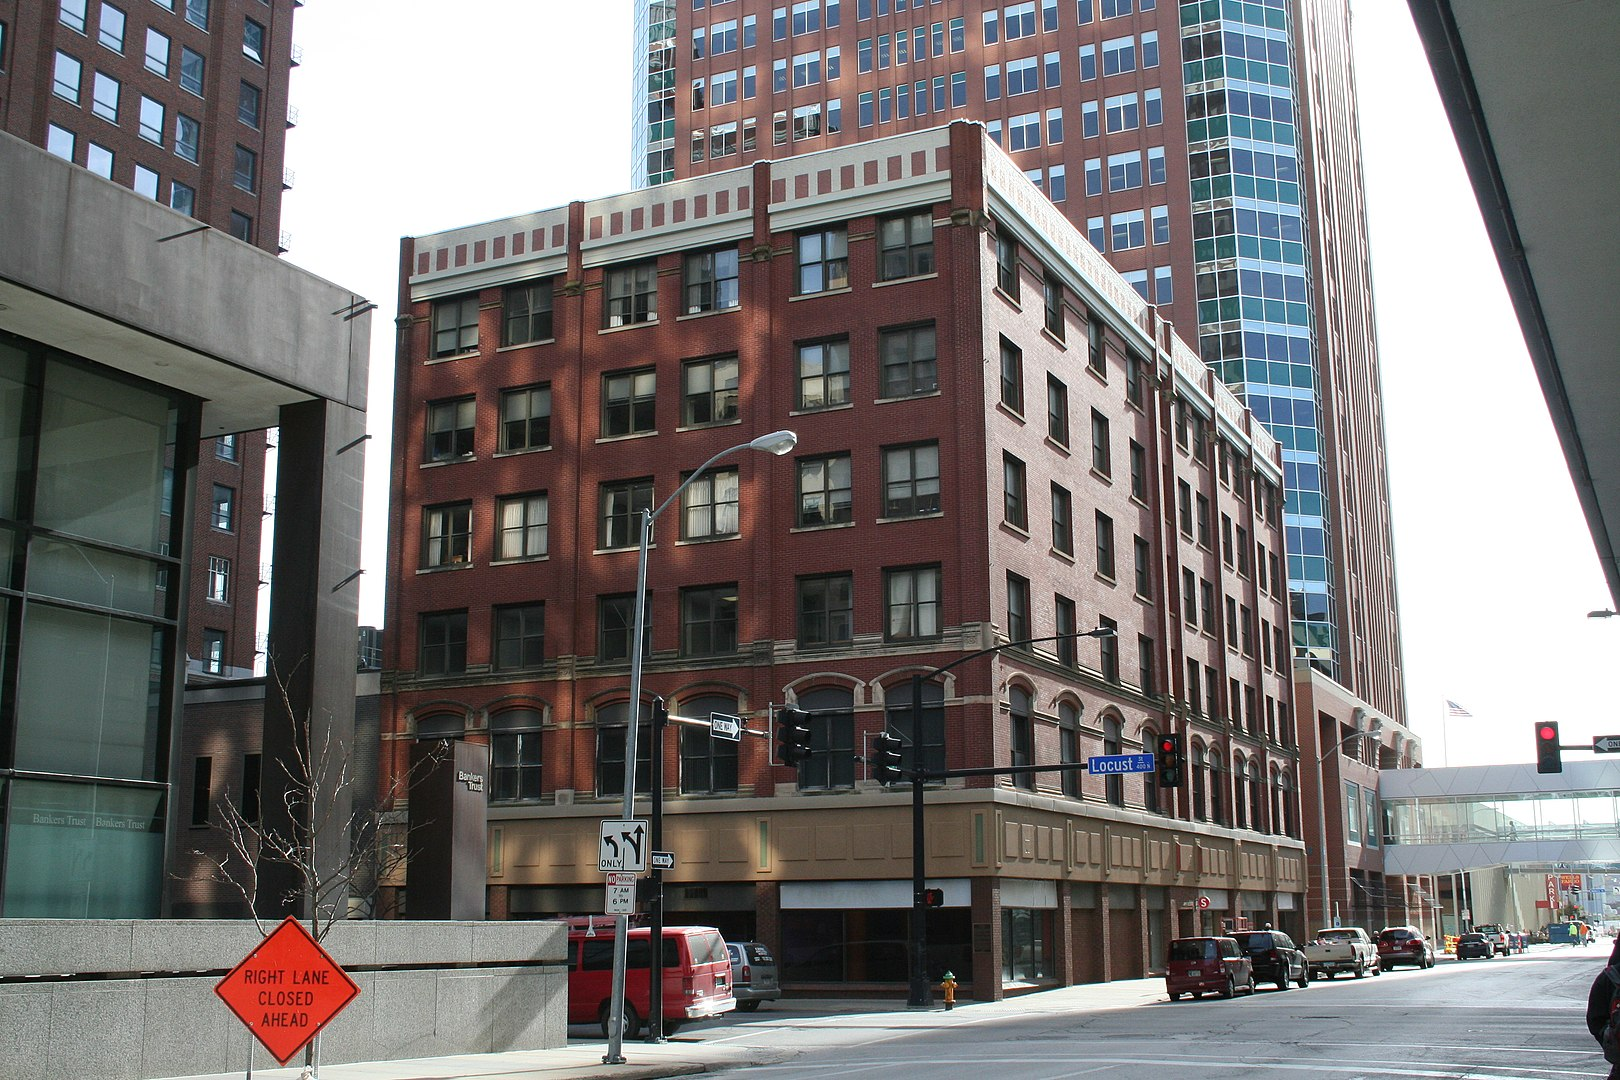 2016 Photo of the Flynn-Griffin Building in Des Moines.